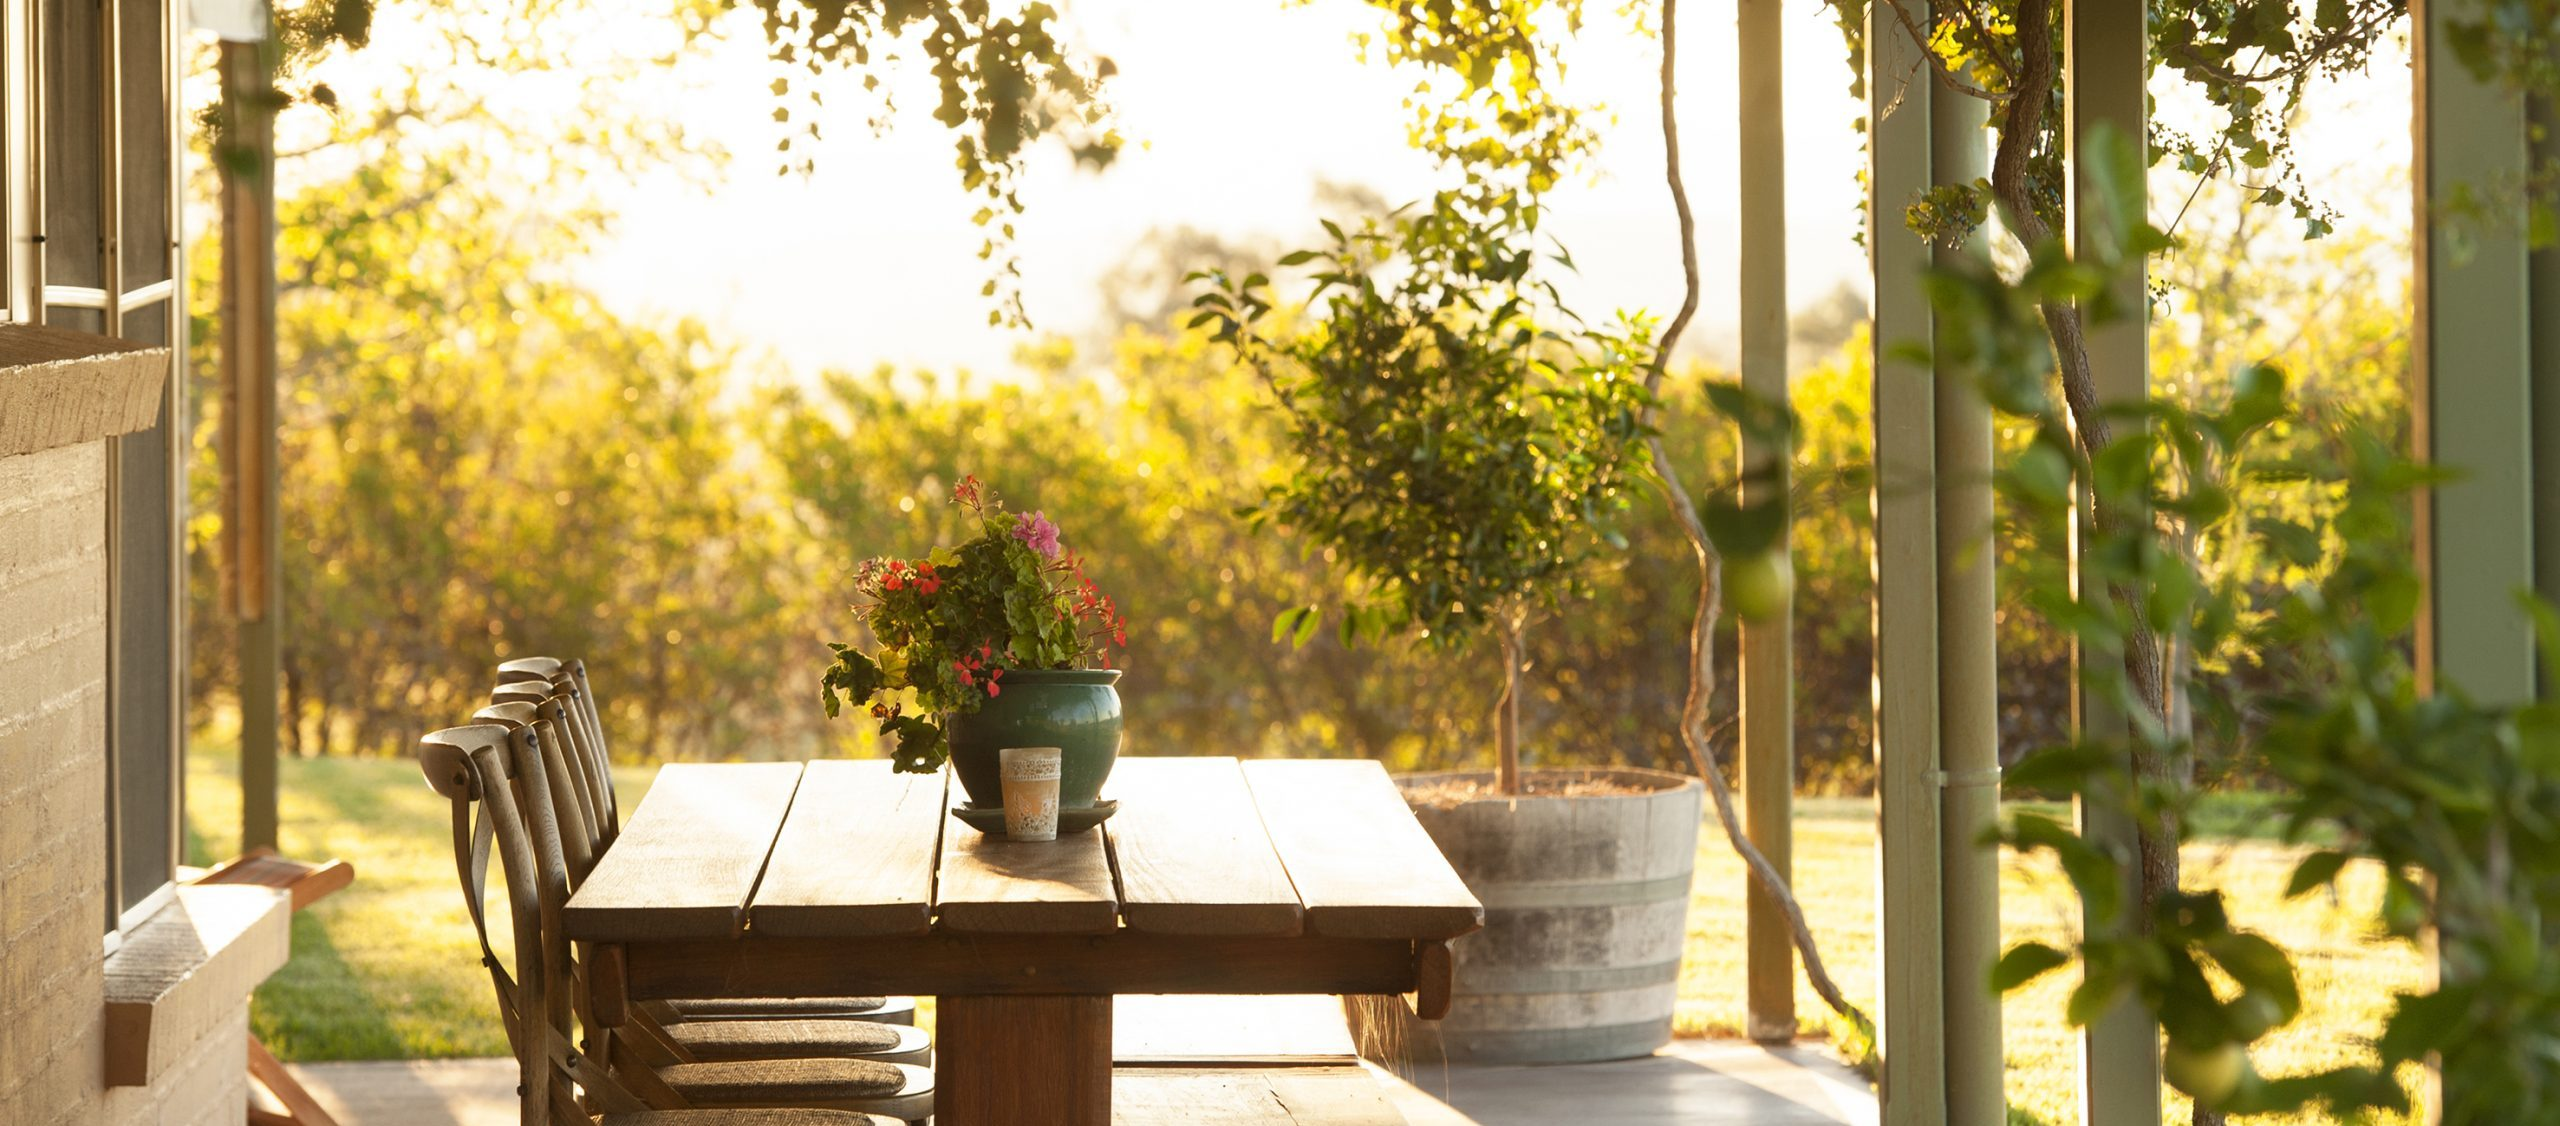 B&Bs and Guesthouses - Mudgee Region